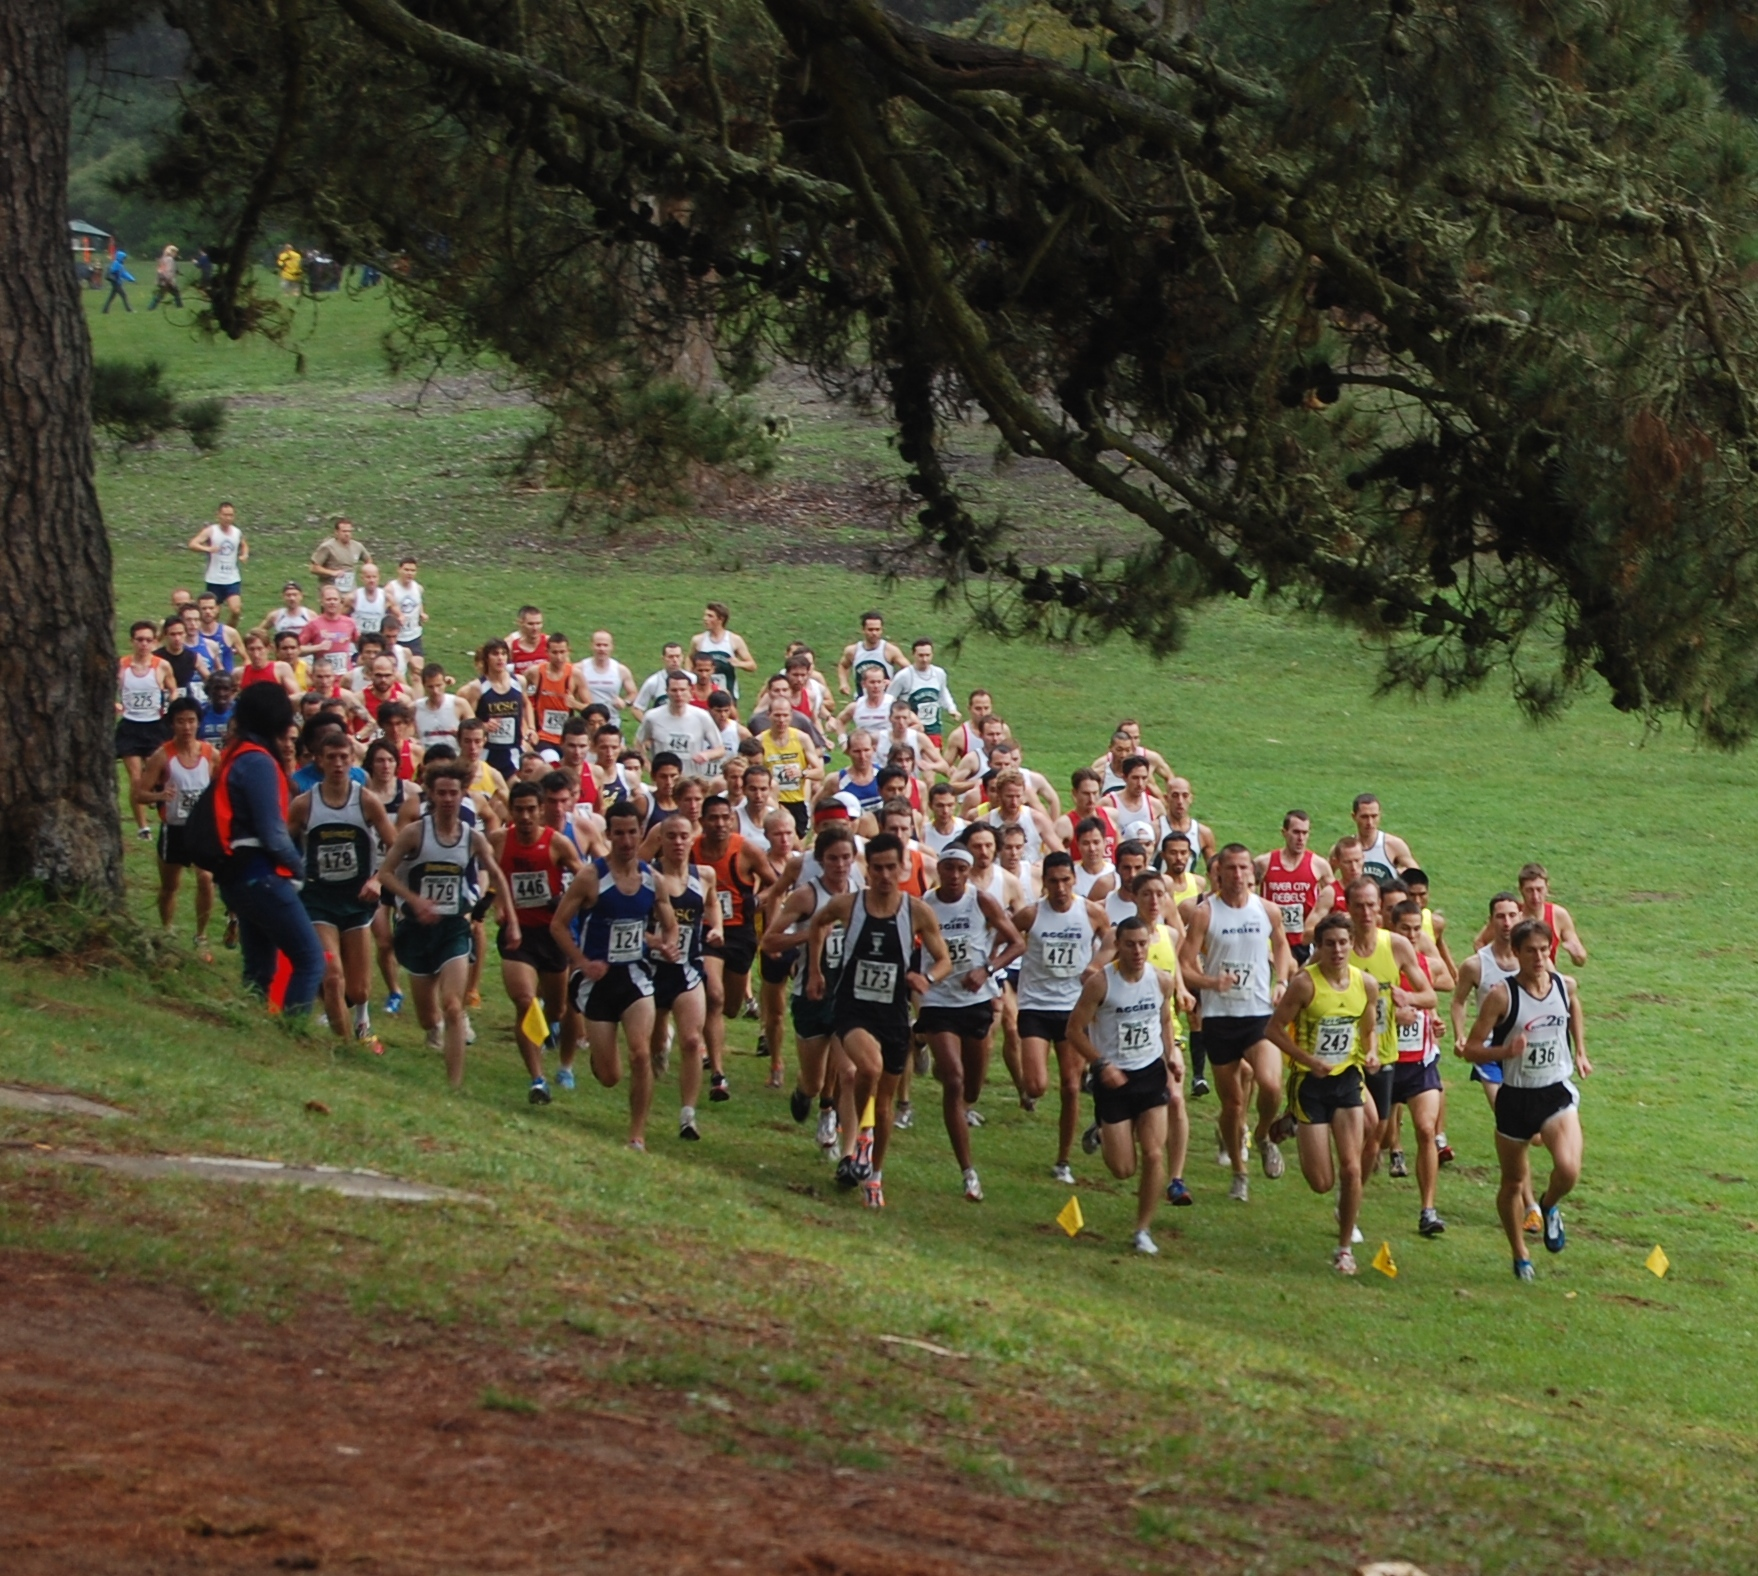 Résultats et photos du cross UNSS de district